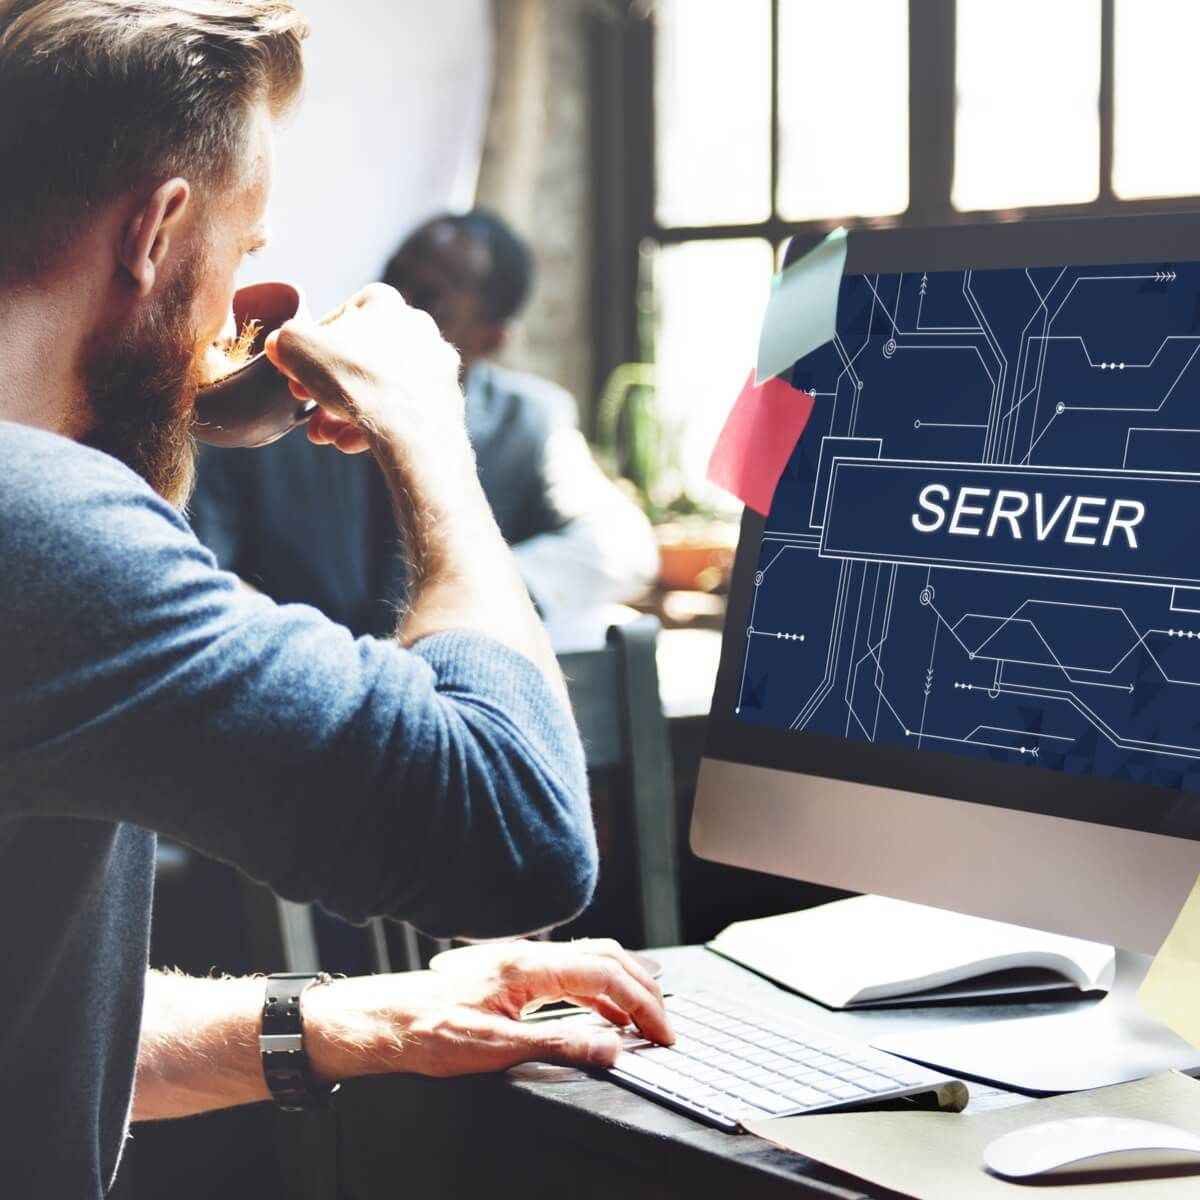 Windows Server comes across as a fairly robust platform to